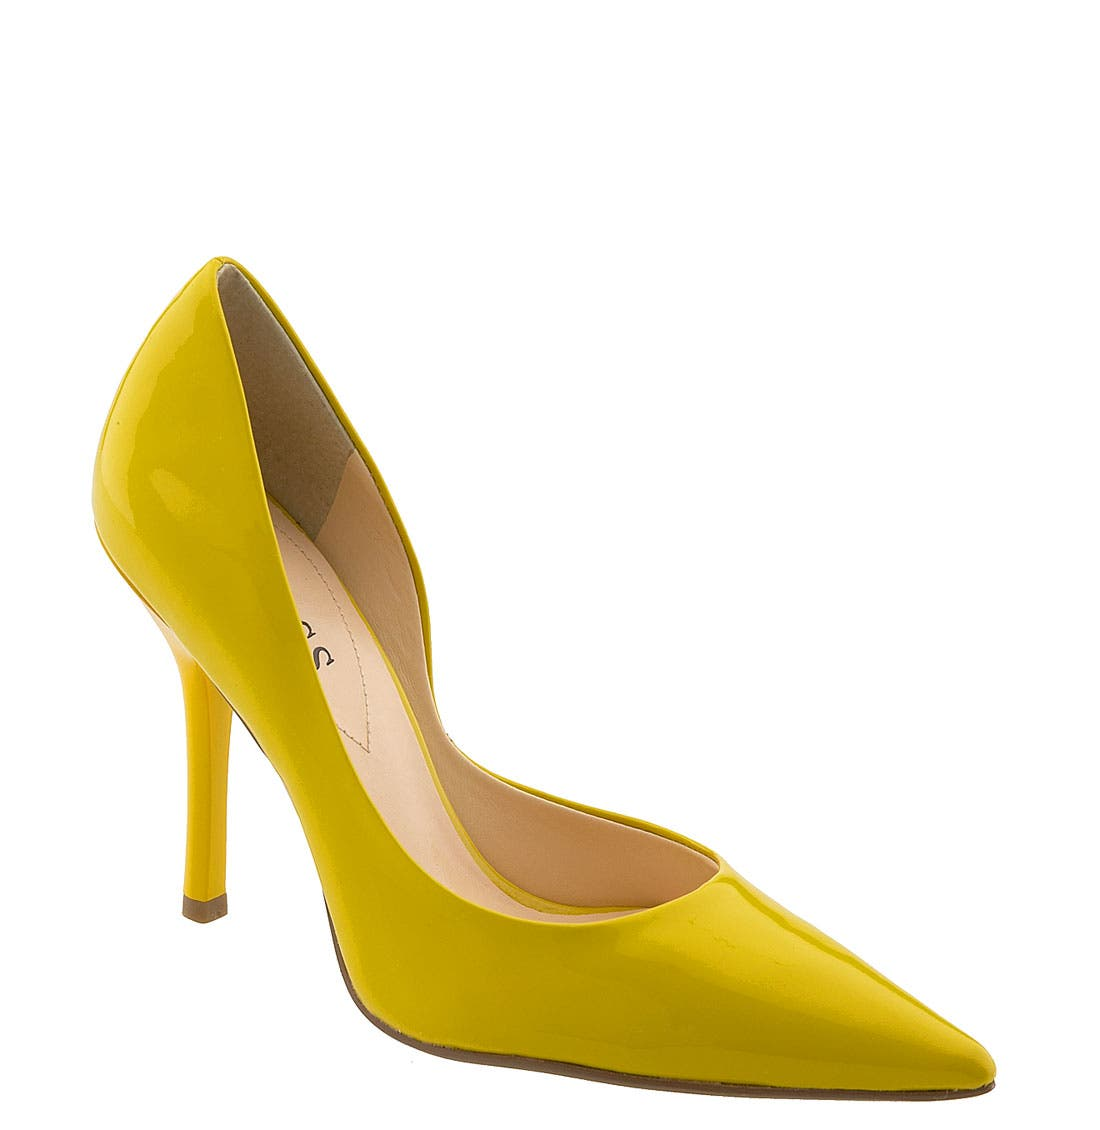 Alternate Image 1 Selected - GUESS 'Carrie' Patent Leather Pump